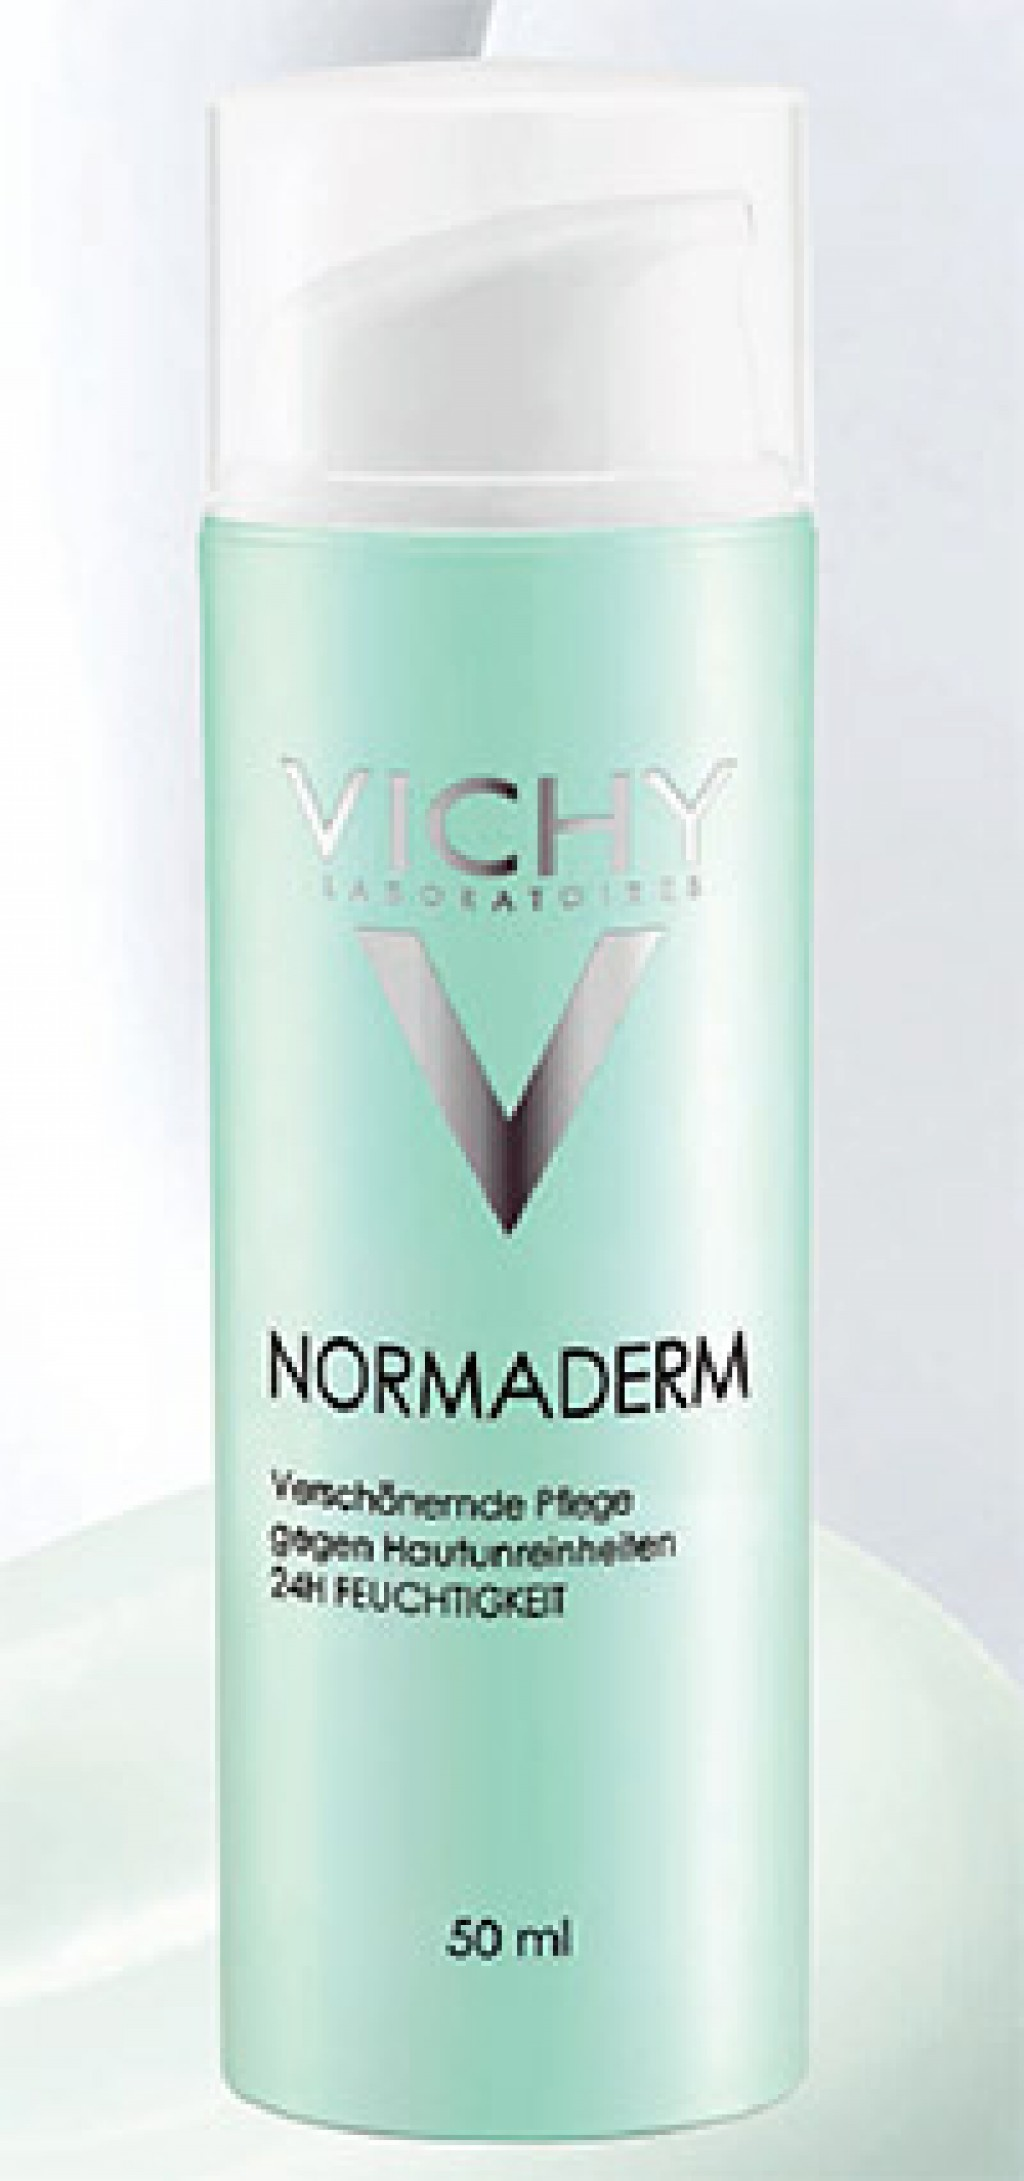 Vichy Normaderm Anti Acne Hydrating Lotion Skin Care